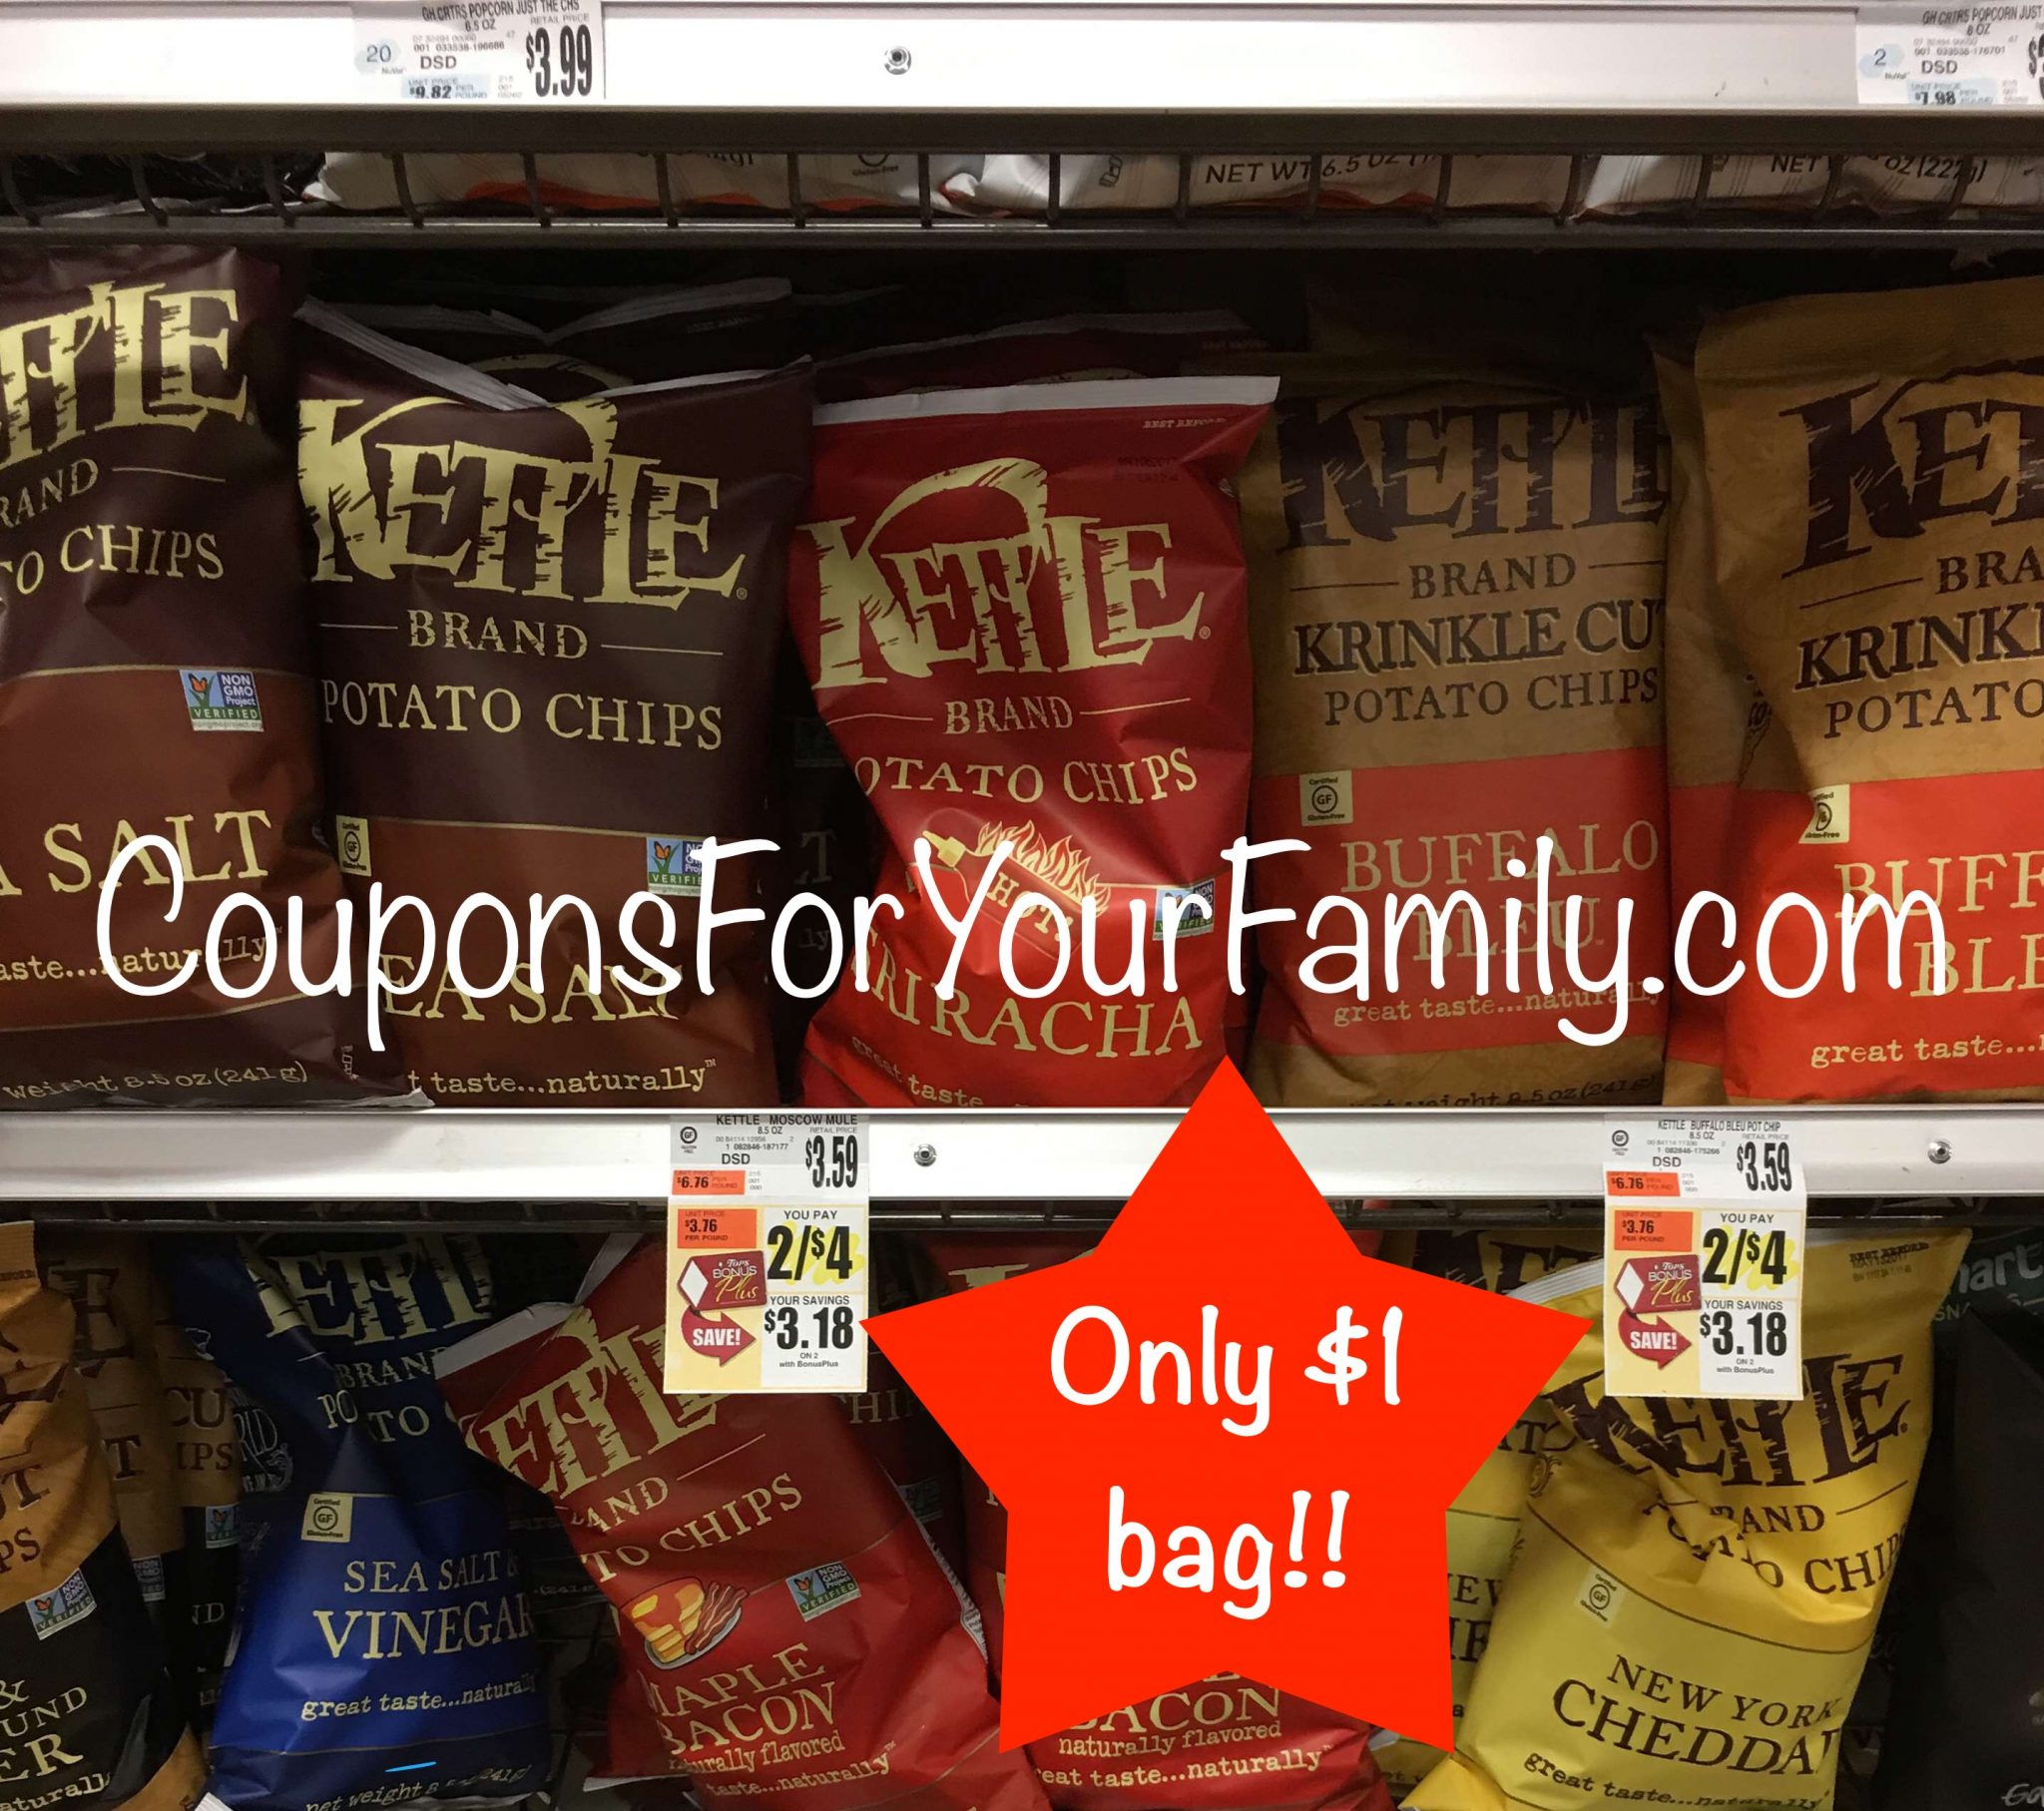 Another Unadvertised Tops Coupon Deal Kettle Chips for only $1 !!!